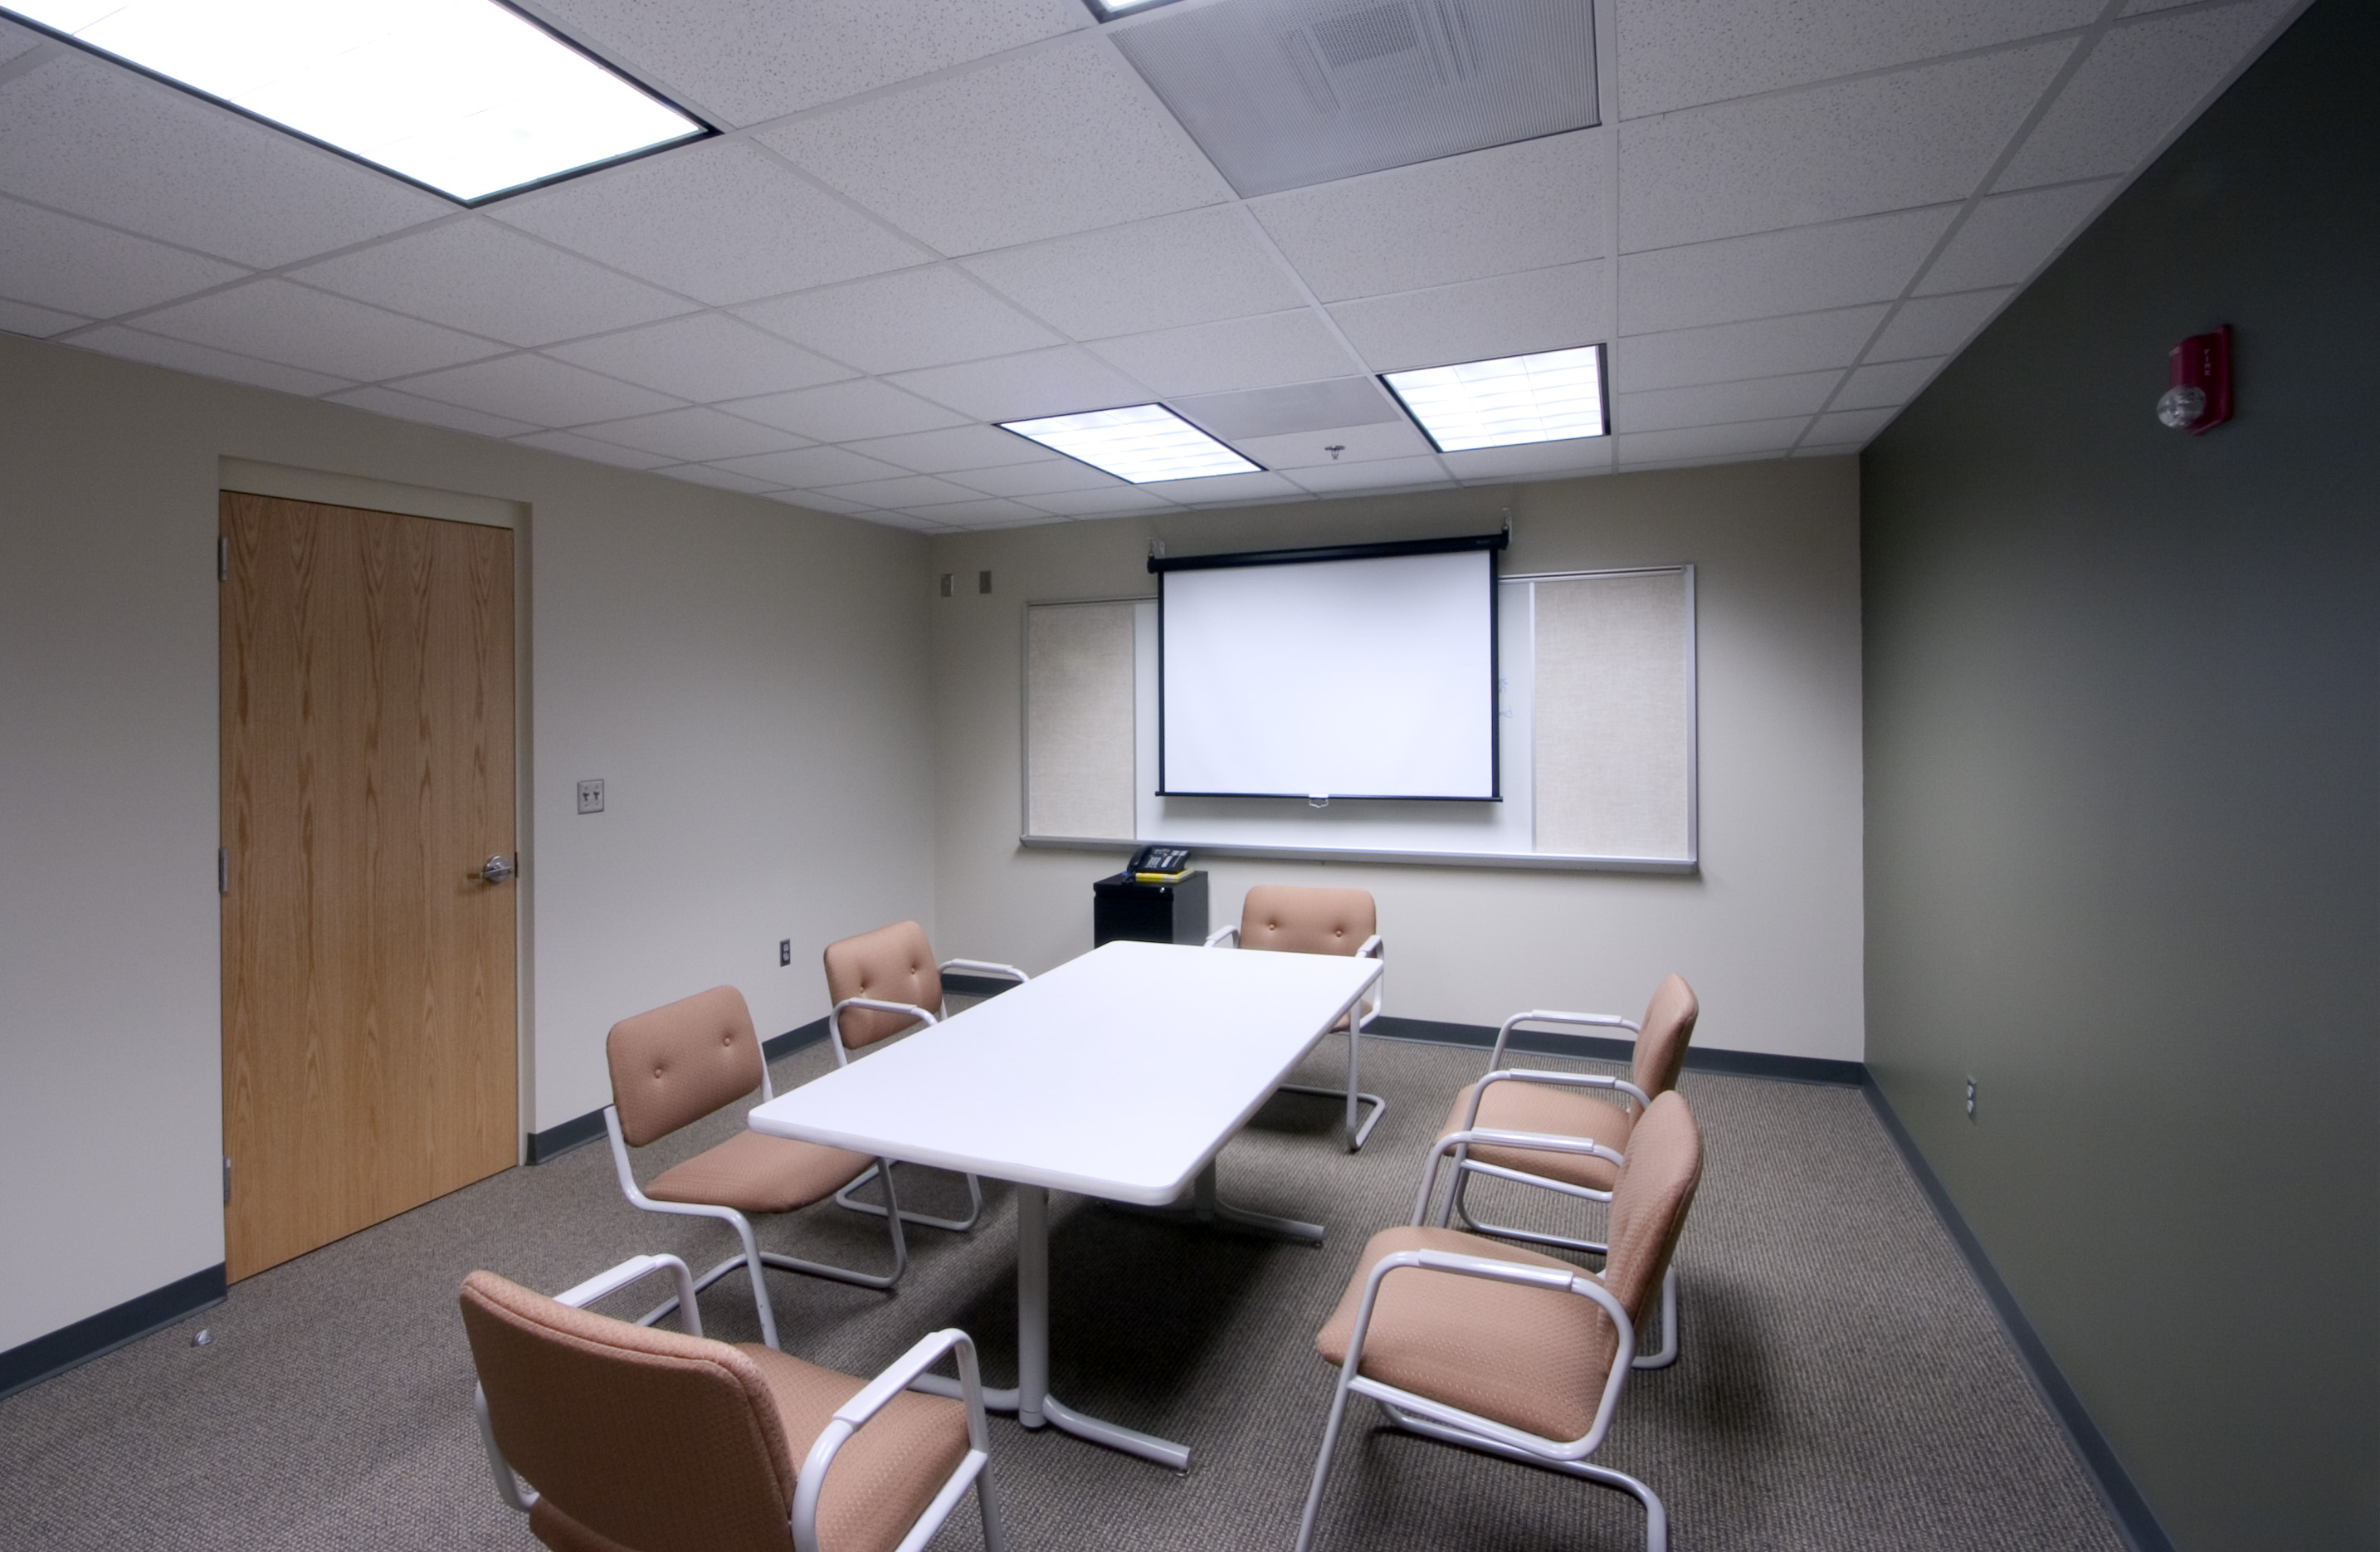 Conference room of fire station